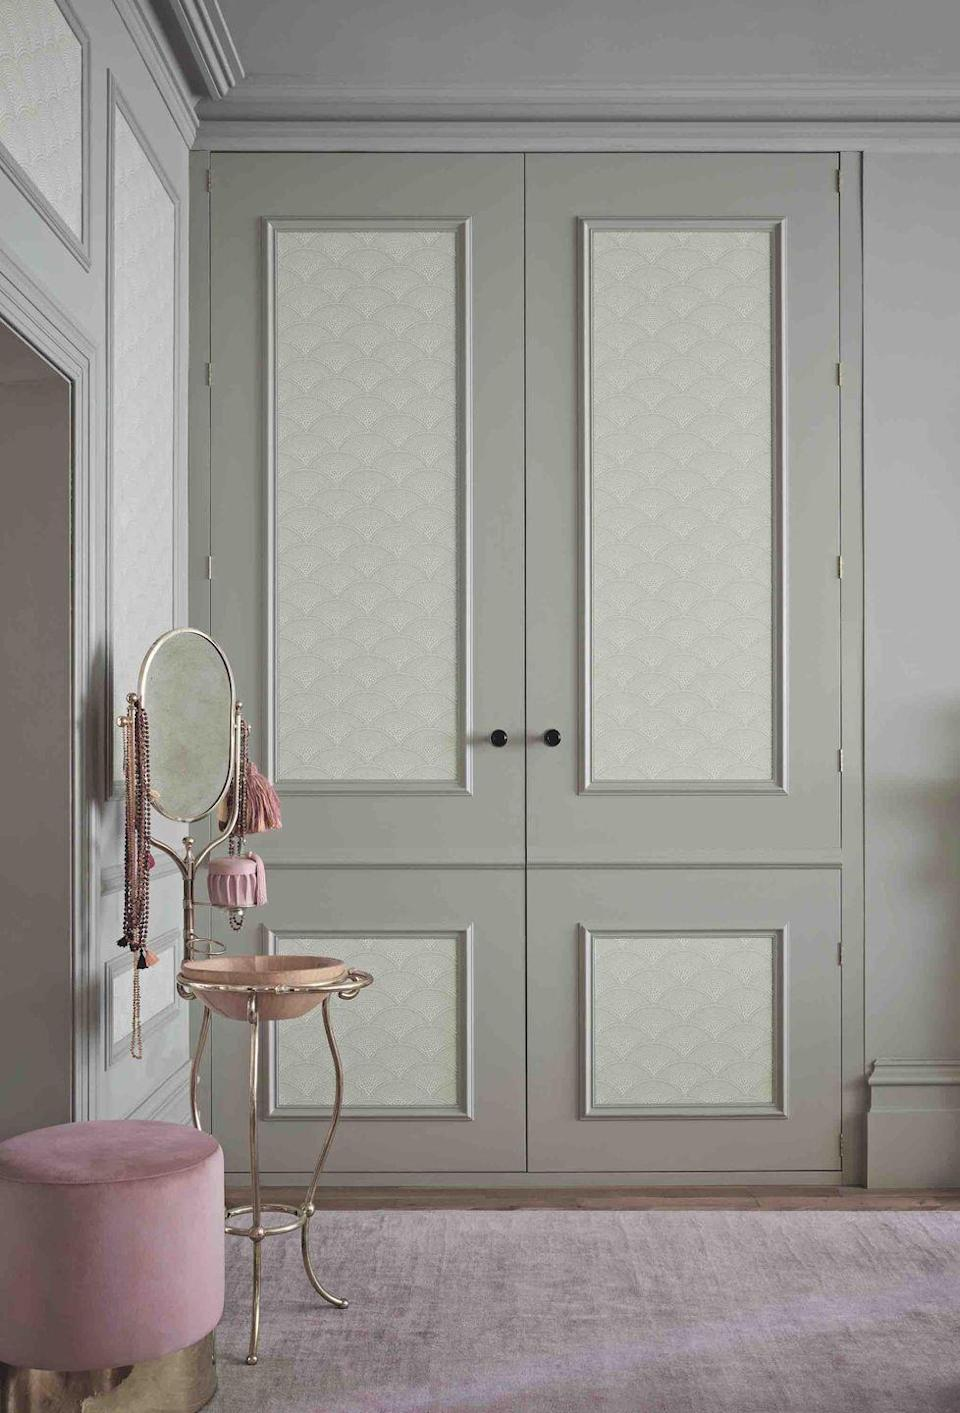 """<p>Pale grey is such a great colour for cupboards as it's calming and softer than stark white. To recreate this grey bedroom idea, add patterned wallpaper in the panels to create interest and give the room a French boudoir look.</p><p>Top Tip: An alternative to wallpapering in the panels, is to use a different coloured paint or stencil a design on them.</p><p>Pictured: <a href=""""https://cole-and-son.com/en/products/feather-fan?v=3802"""" rel=""""nofollow noopener"""" target=""""_blank"""" data-ylk=""""slk:Feather Fan wallpaper in Soft Olive, from Cole & Son"""" class=""""link rapid-noclick-resp"""">Feather Fan wallpaper in Soft Olive, from Cole & Son</a>. A similar paint colour is <a href=""""https://go.redirectingat.com?id=127X1599956&url=https%3A%2F%2Fwww.johnlewis.com%2Fthe-little-greene-paint-company-intelligent-matt-emulsion-light-greys%2Finox-224%2Fp1492499&sref=https%3A%2F%2Fwww.housebeautiful.com%2Fuk%2Fdecorate%2Fbedroom%2Fg35432015%2Fgrey-bedroom-ideas%2F"""" rel=""""nofollow noopener"""" target=""""_blank"""" data-ylk=""""slk:Inox from Little Greene"""" class=""""link rapid-noclick-resp"""">Inox from Little Greene</a>.</p>"""